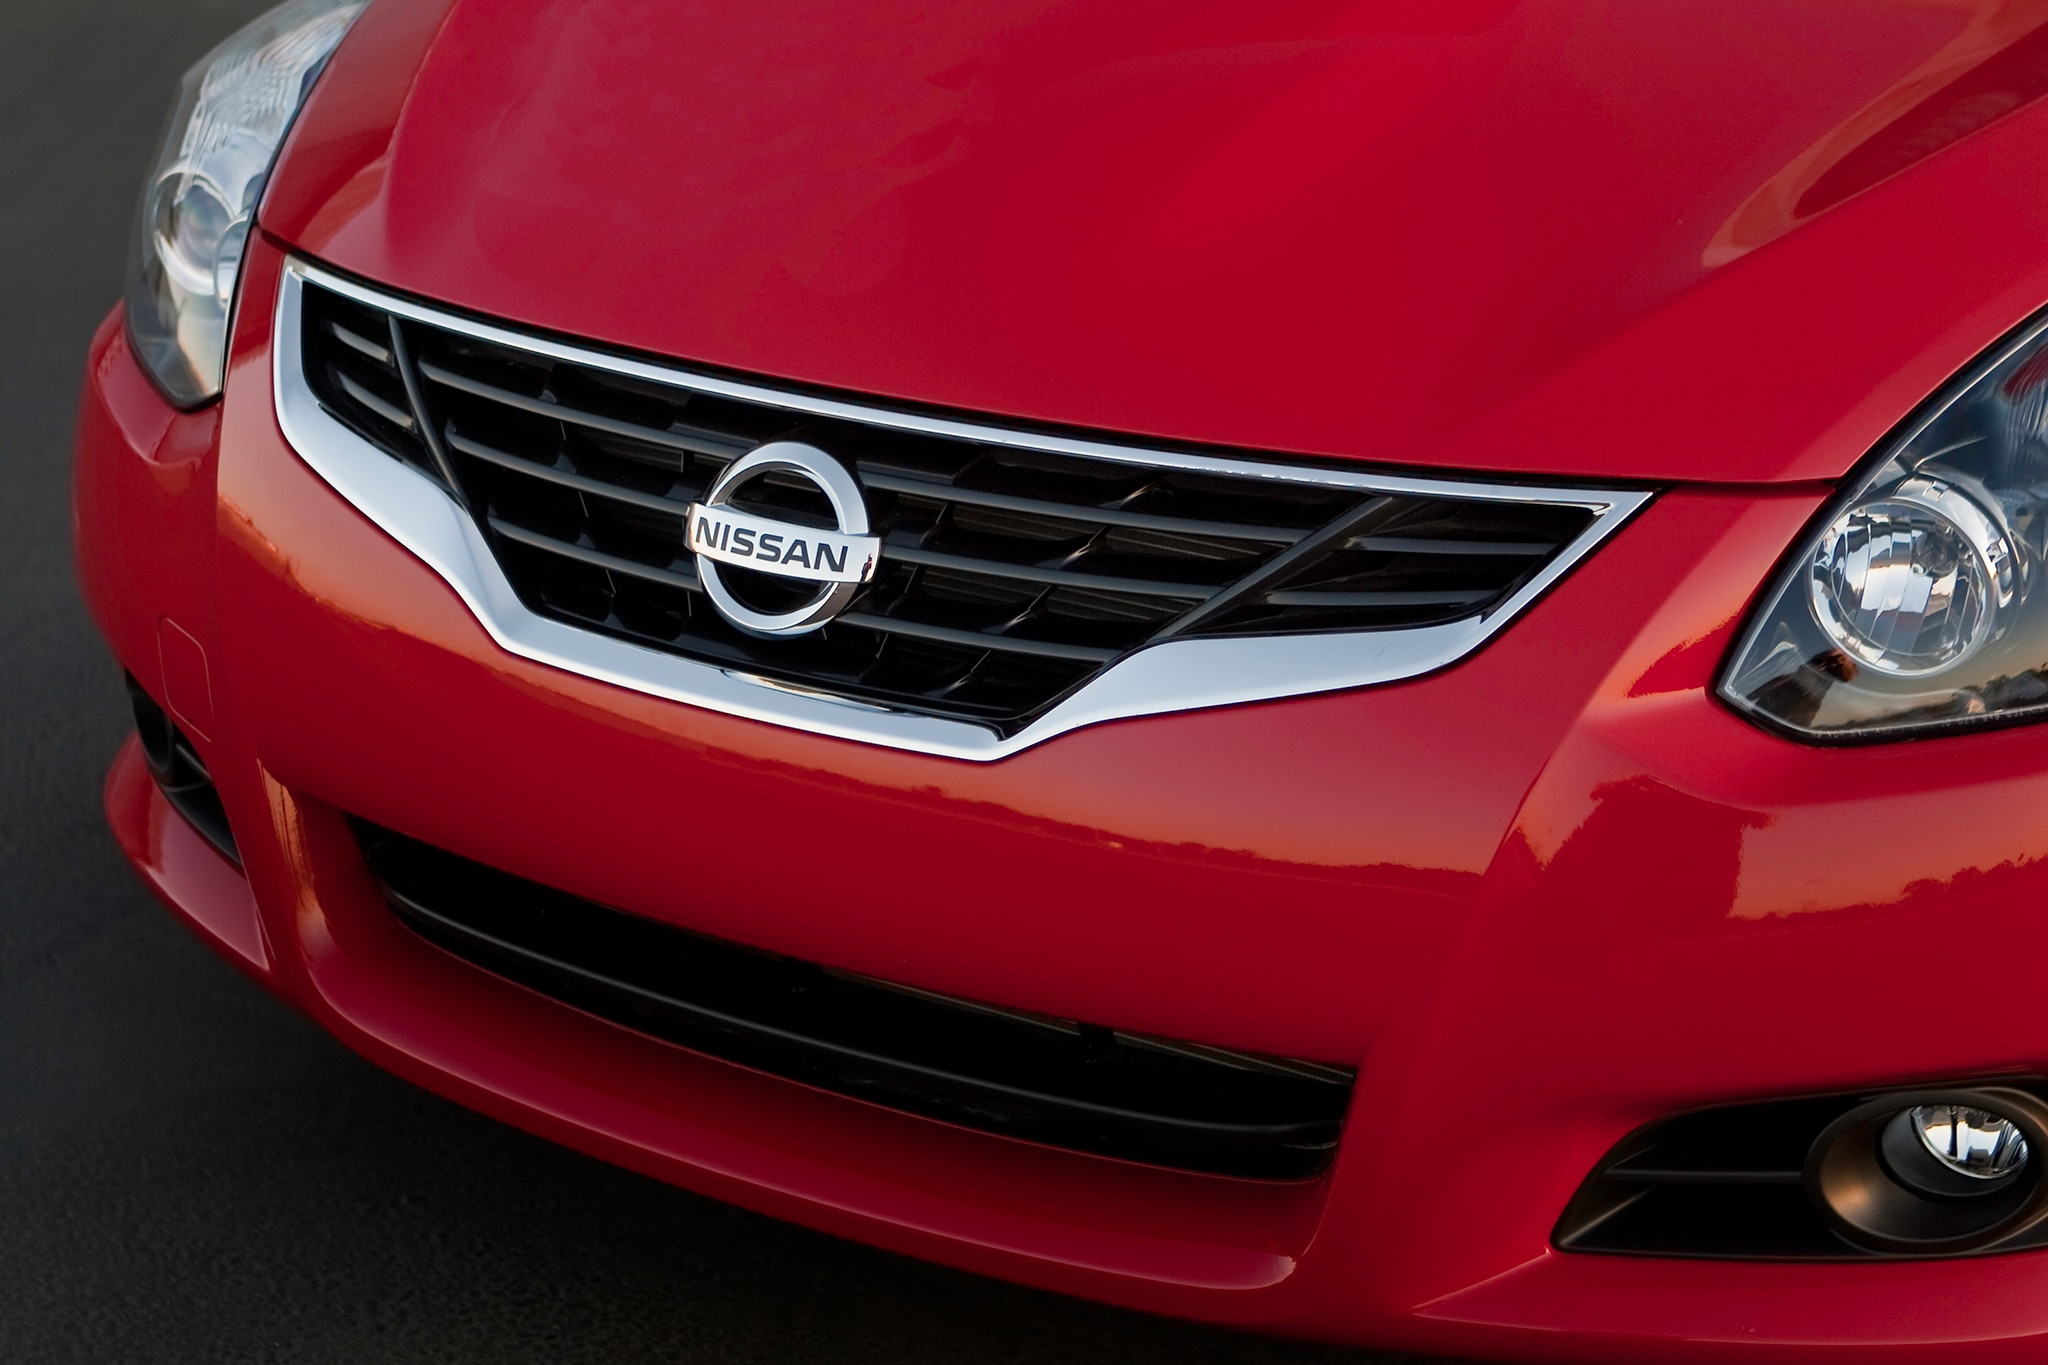 altima reviews features s coupe photos hatchback interior nissan price